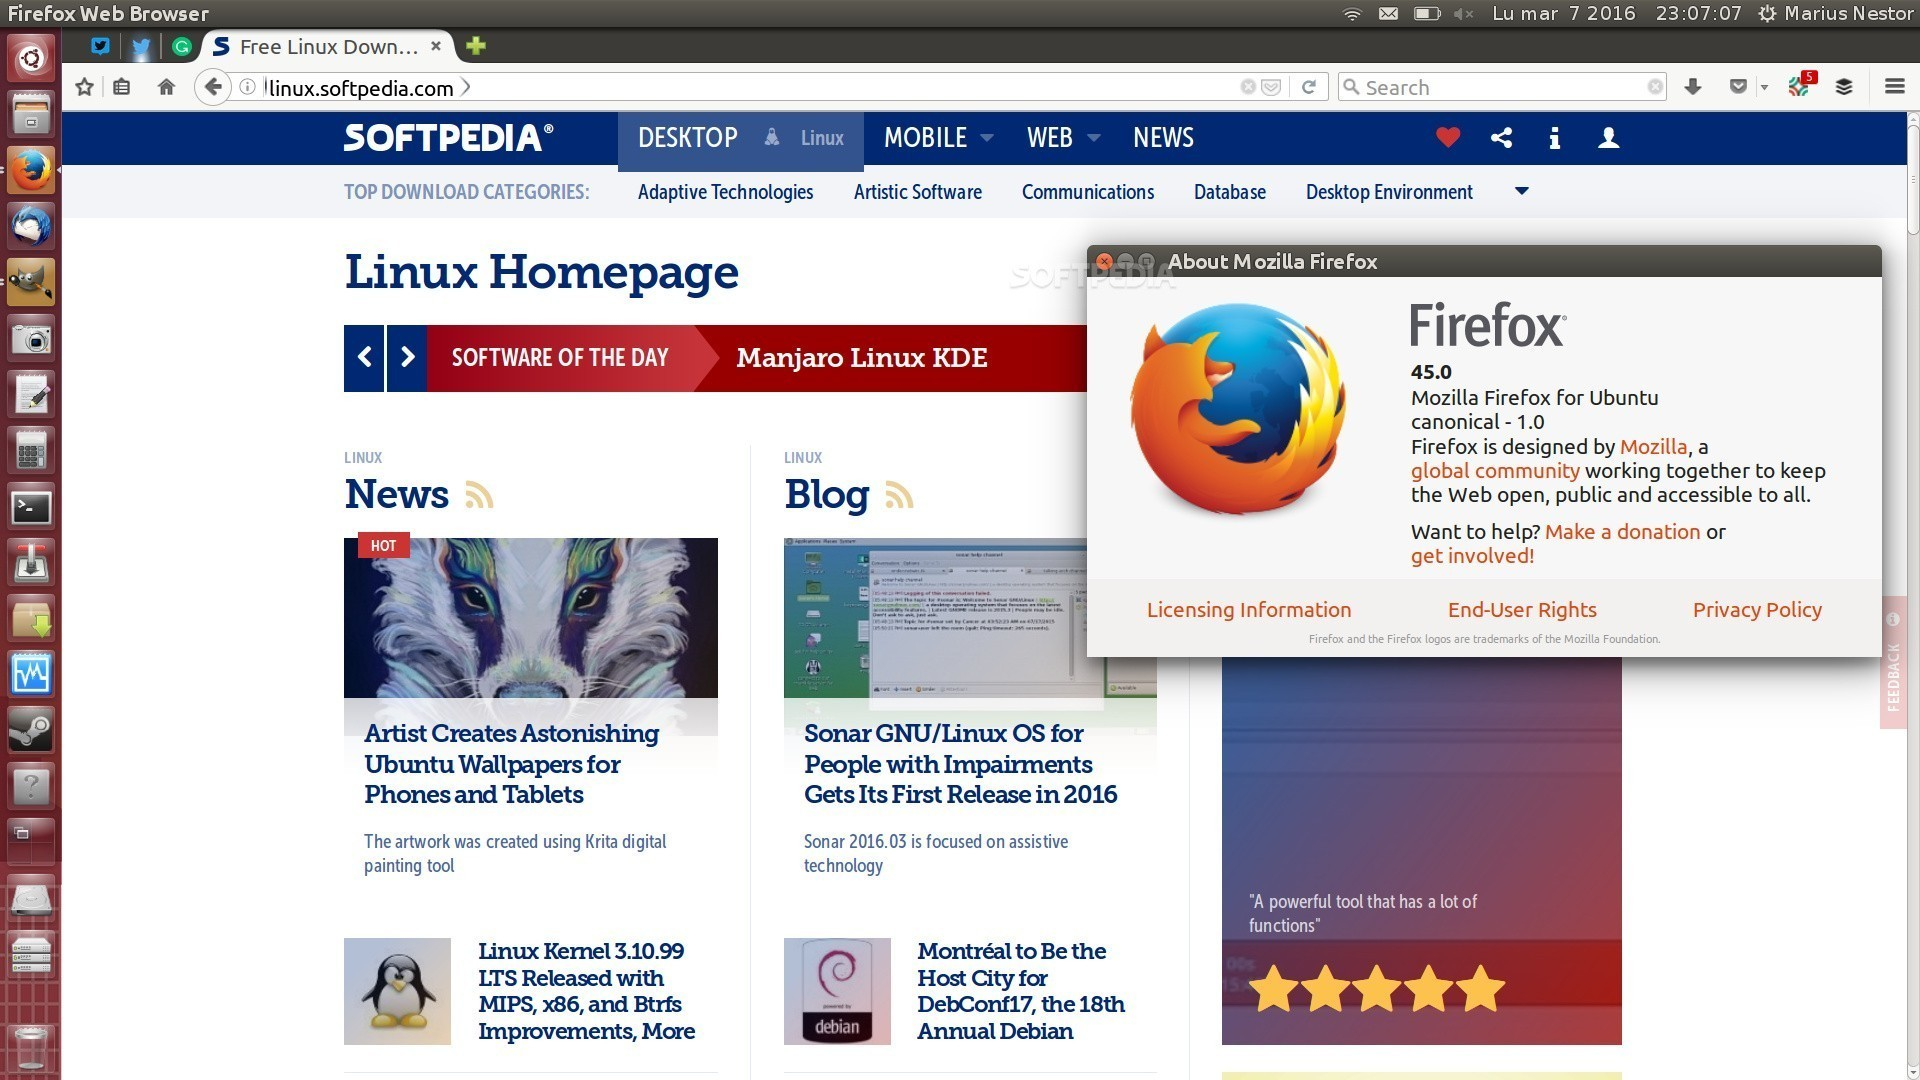 Mozilla Firefox 45.0.2 Released for Linux. Windows & Mac OS X with More Bugfixes